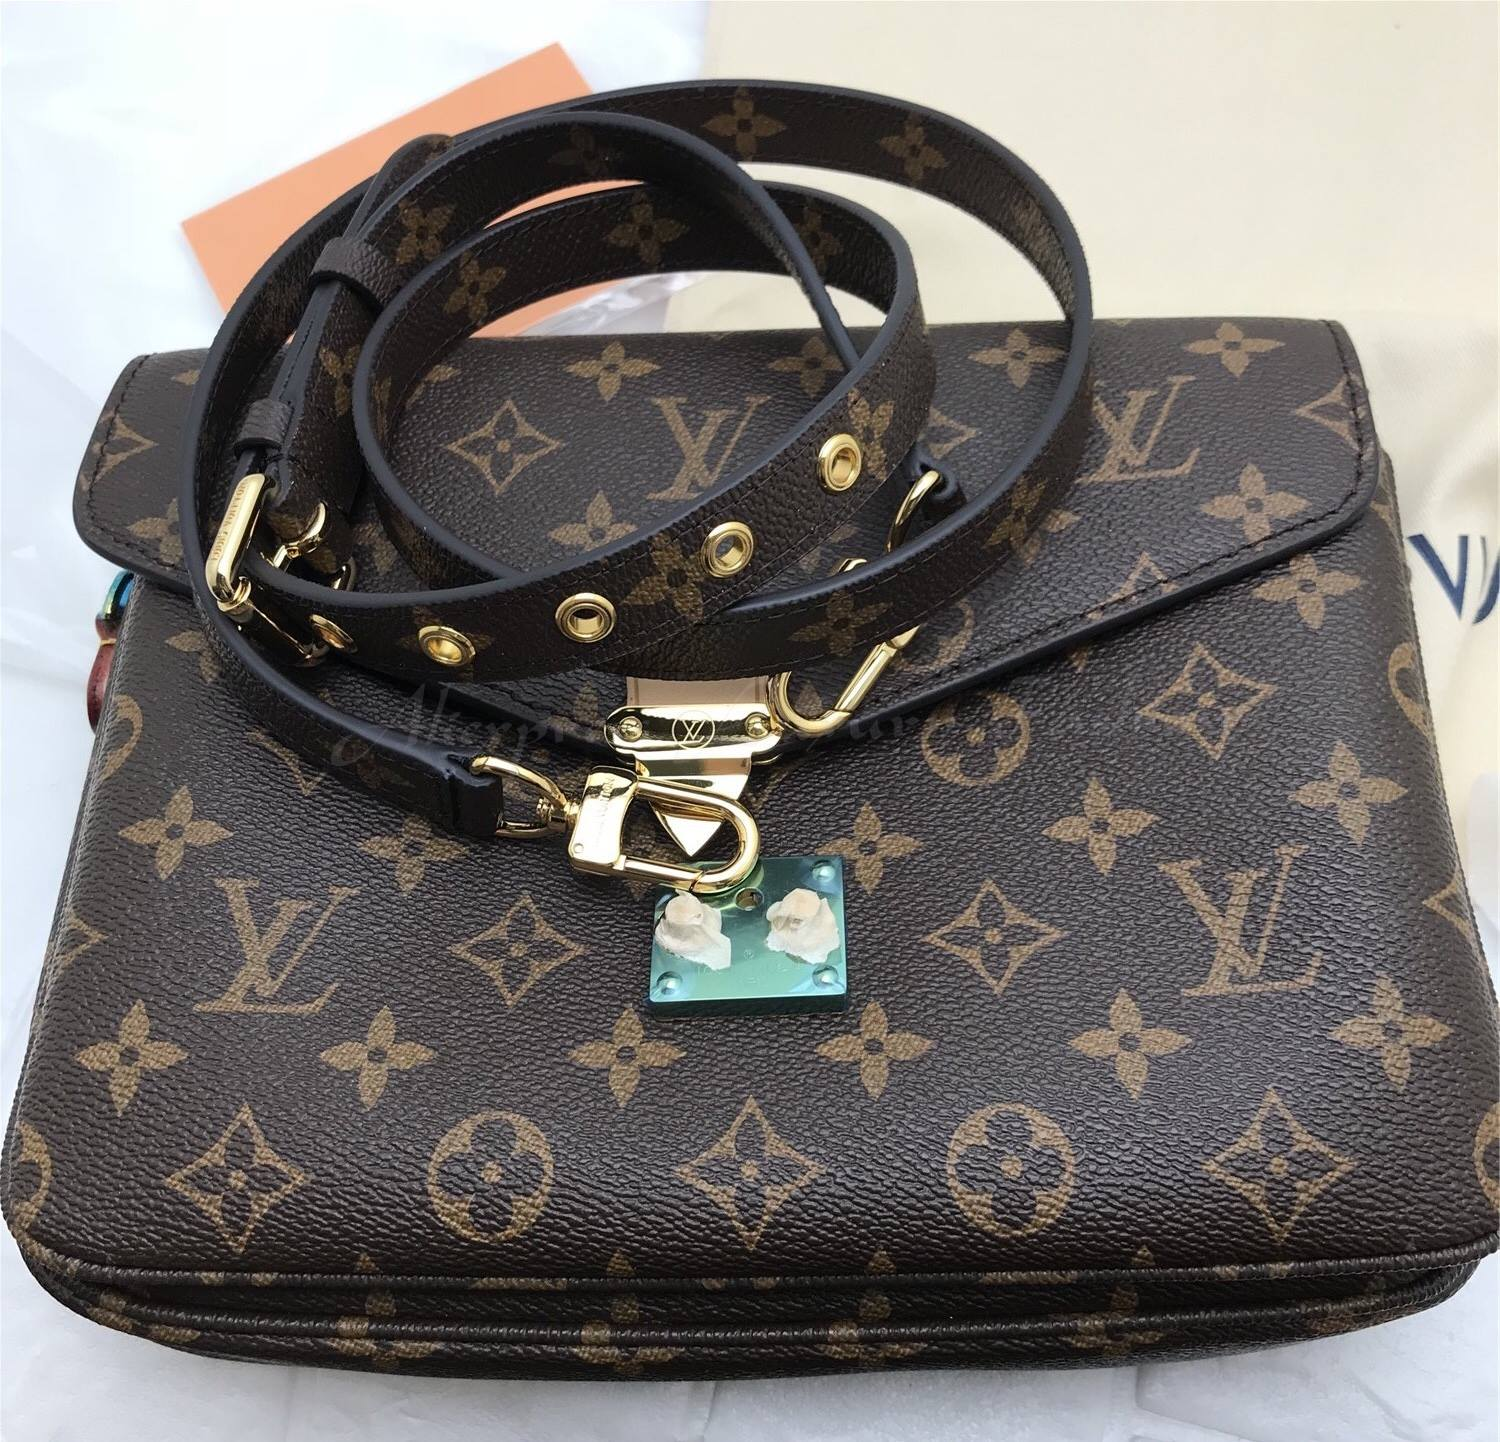 Counterfeit Handbags Flood The Retail And Resale Market